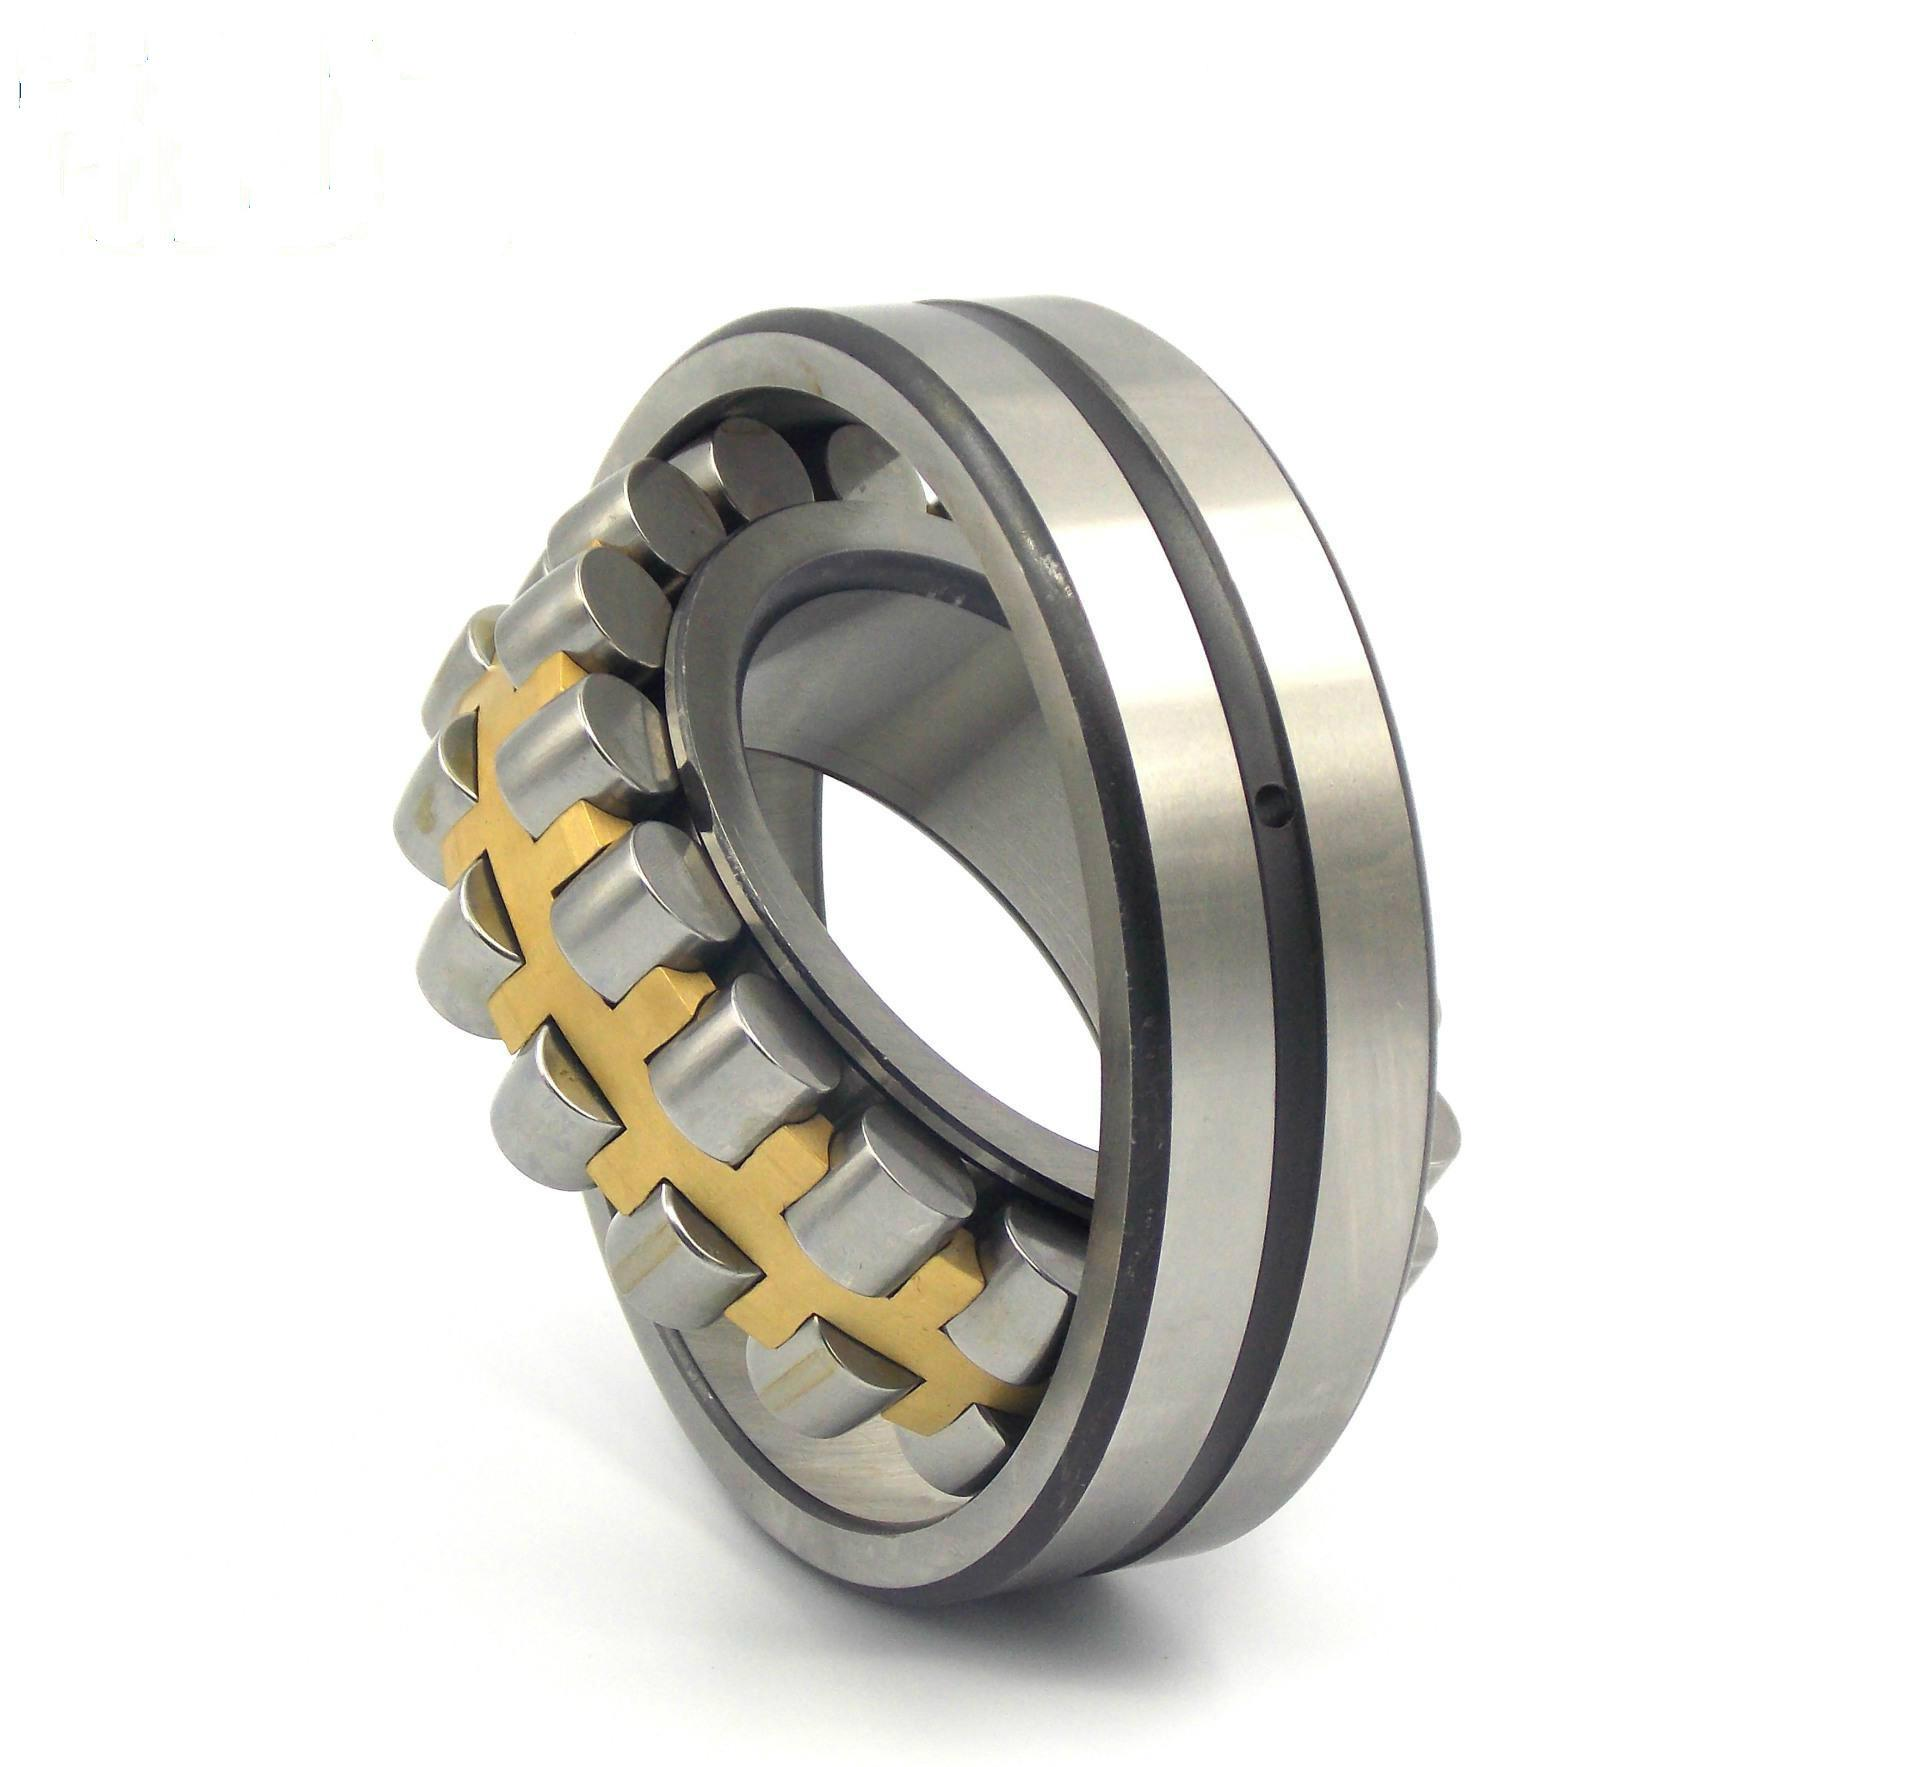 NJ 320 M Cylindrical roller bearing